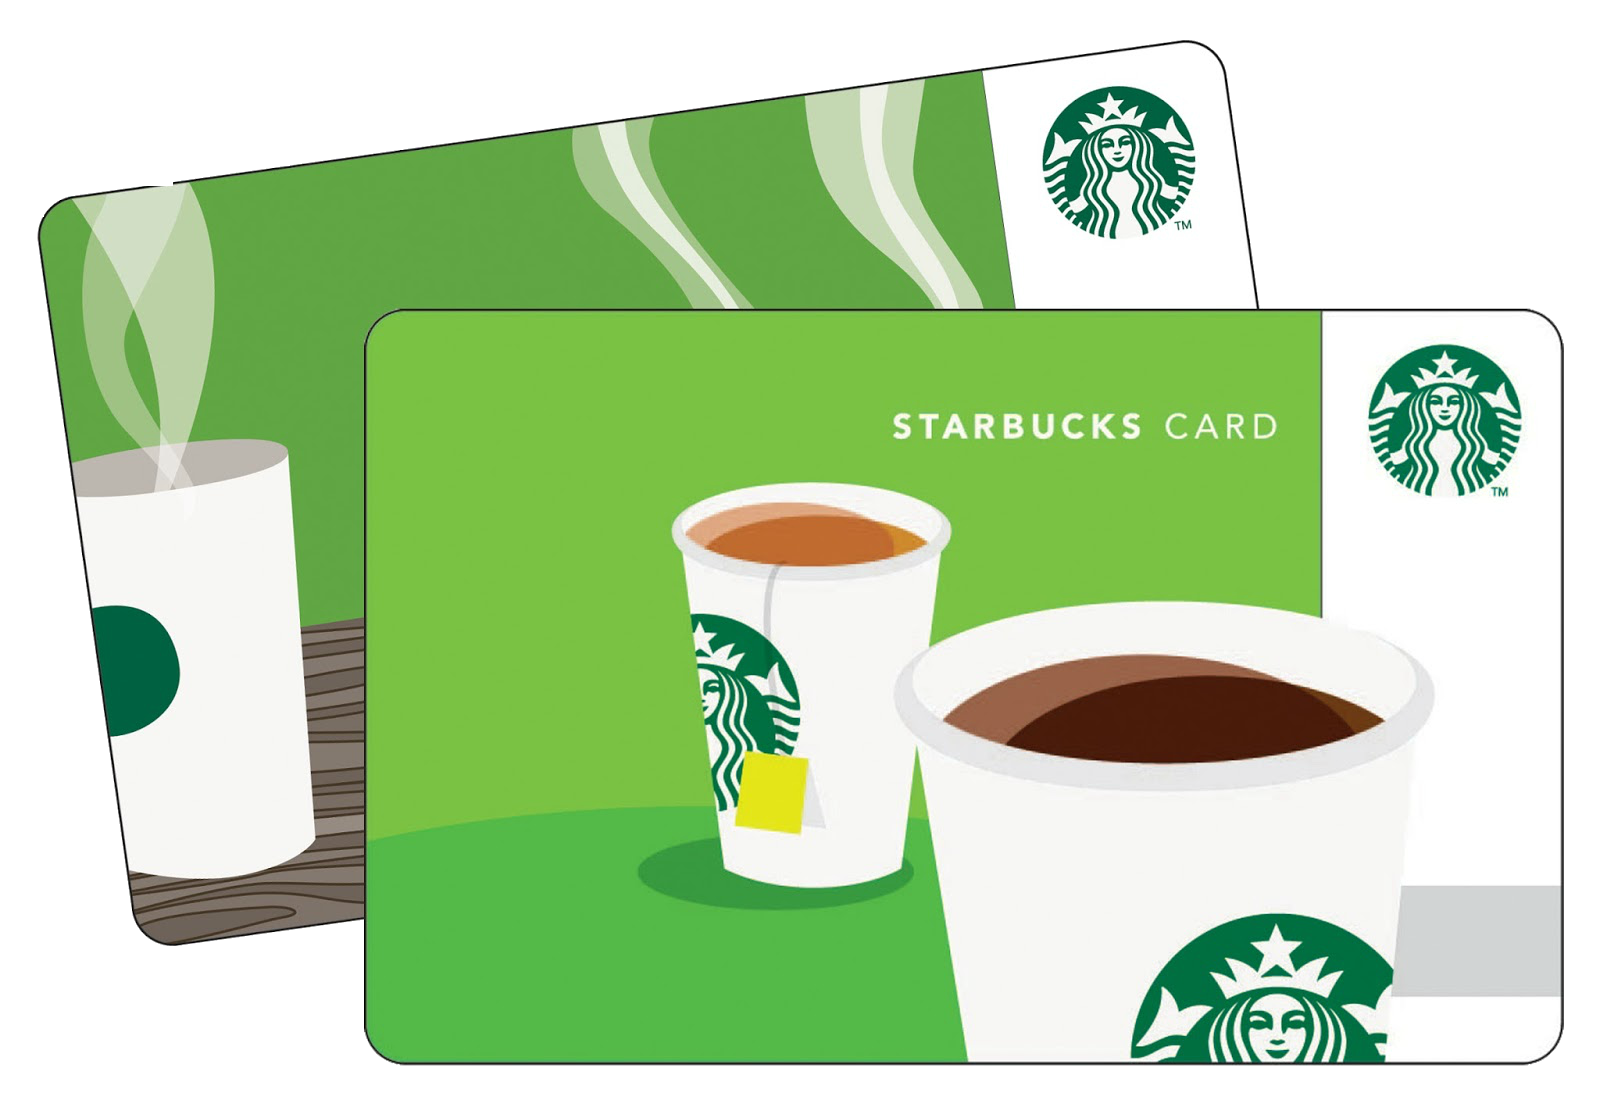 Back In Stock ***HOT*** $10 Starbucks Gift Card Only $4.82!! HURRY ...